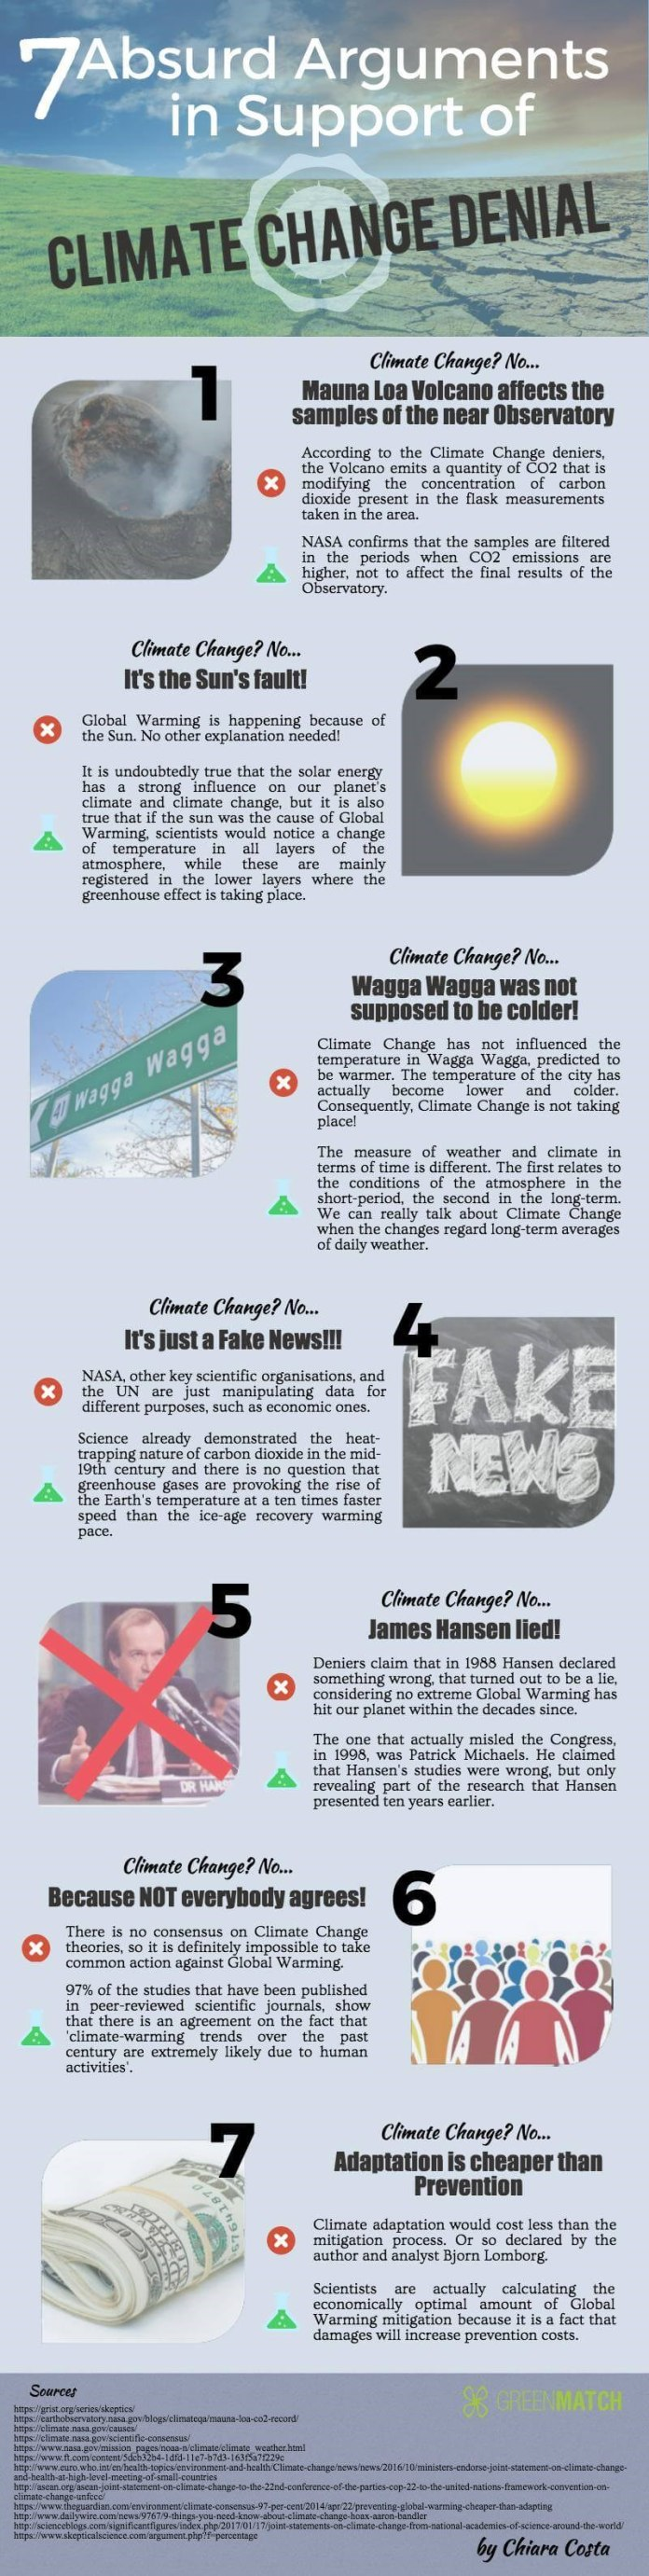 Here's What You Need To Know About Climate Change Denial